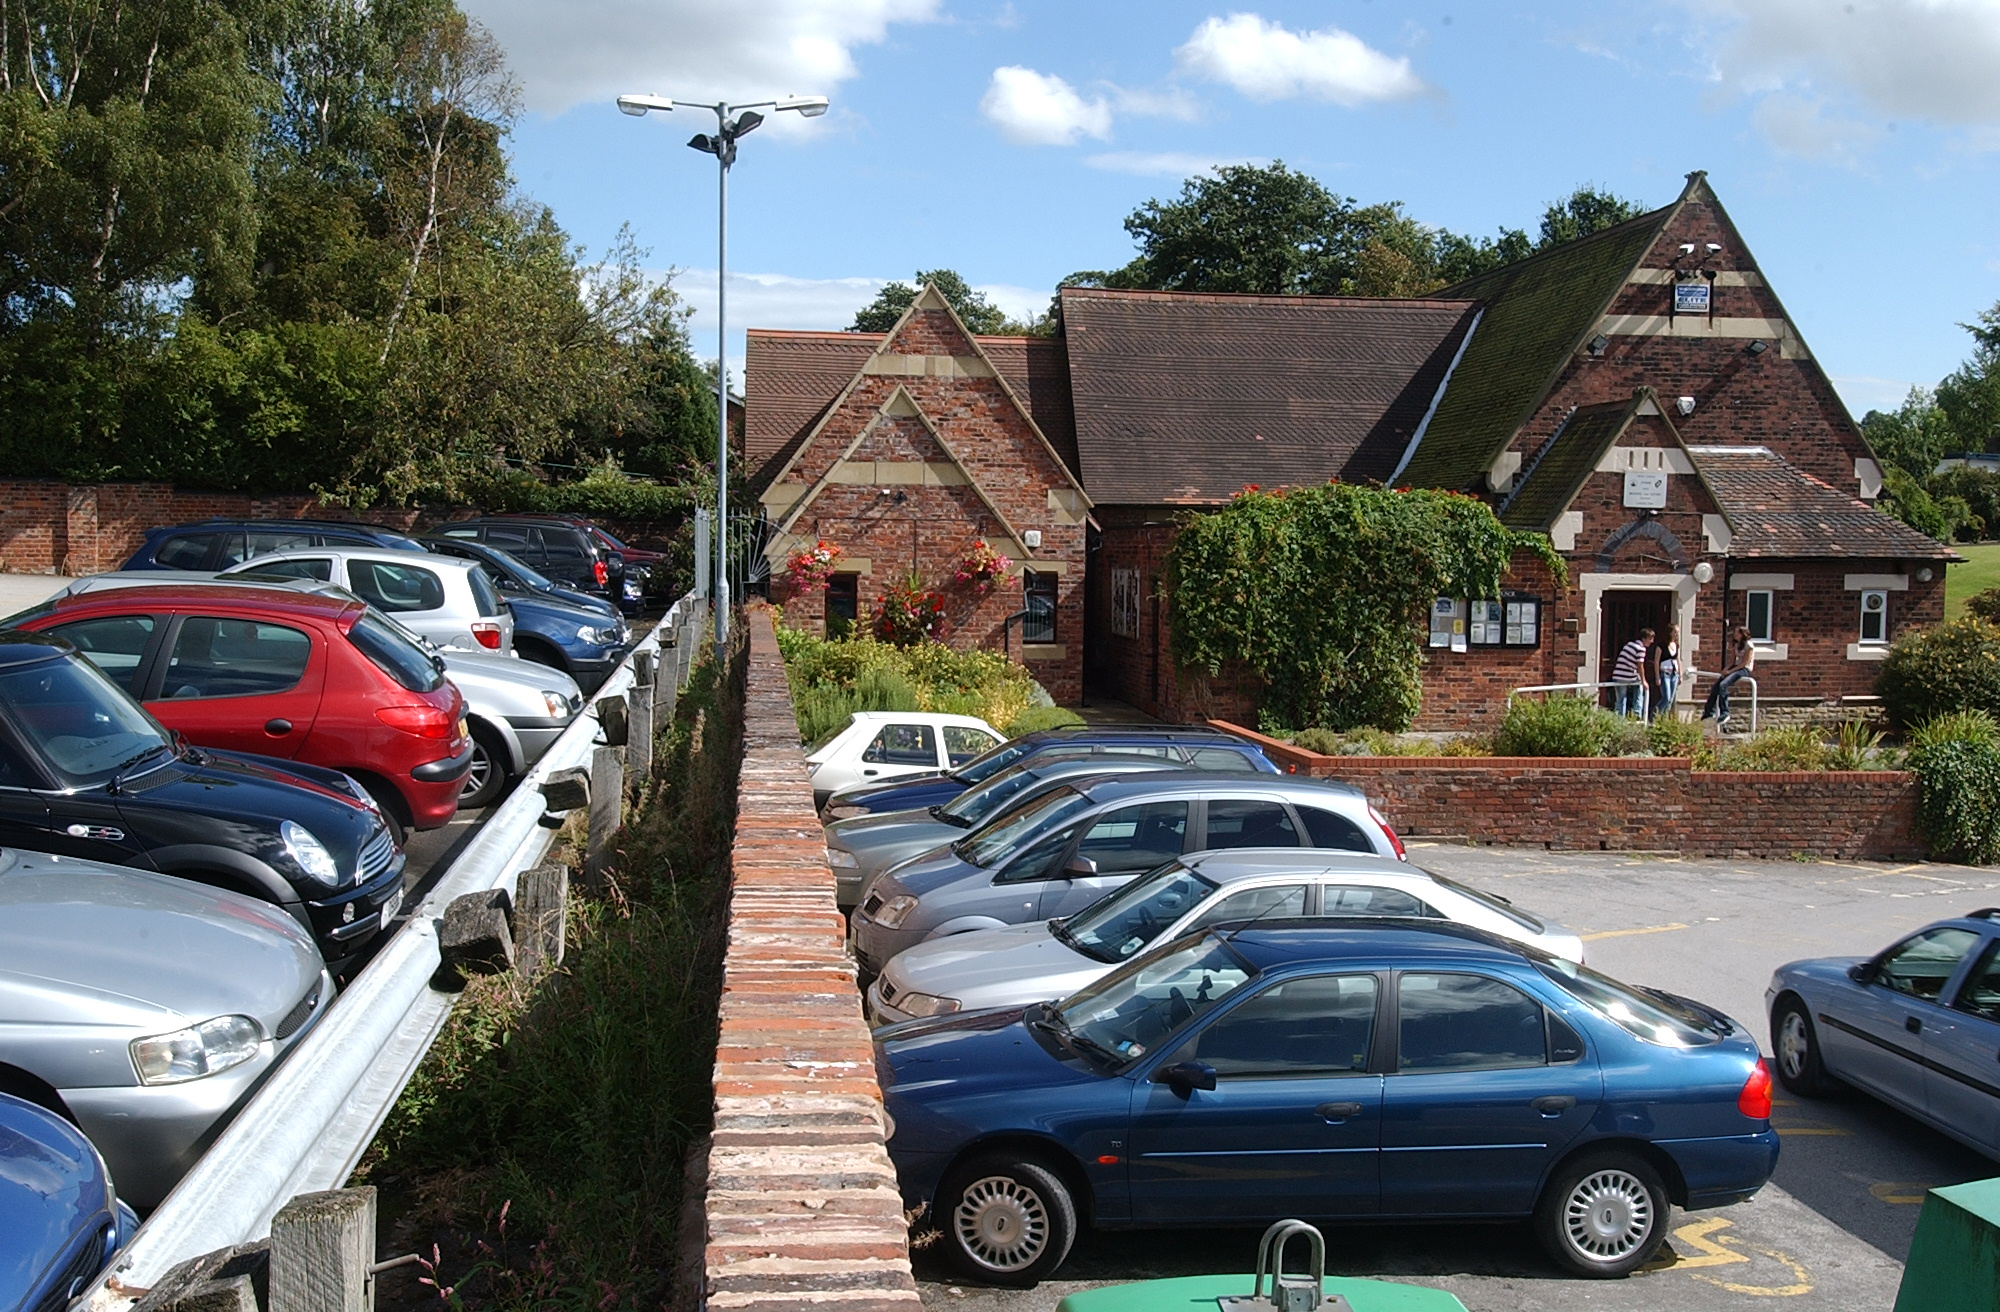 Pepper Street car park in Lymm will be among those to have new charges from Monday